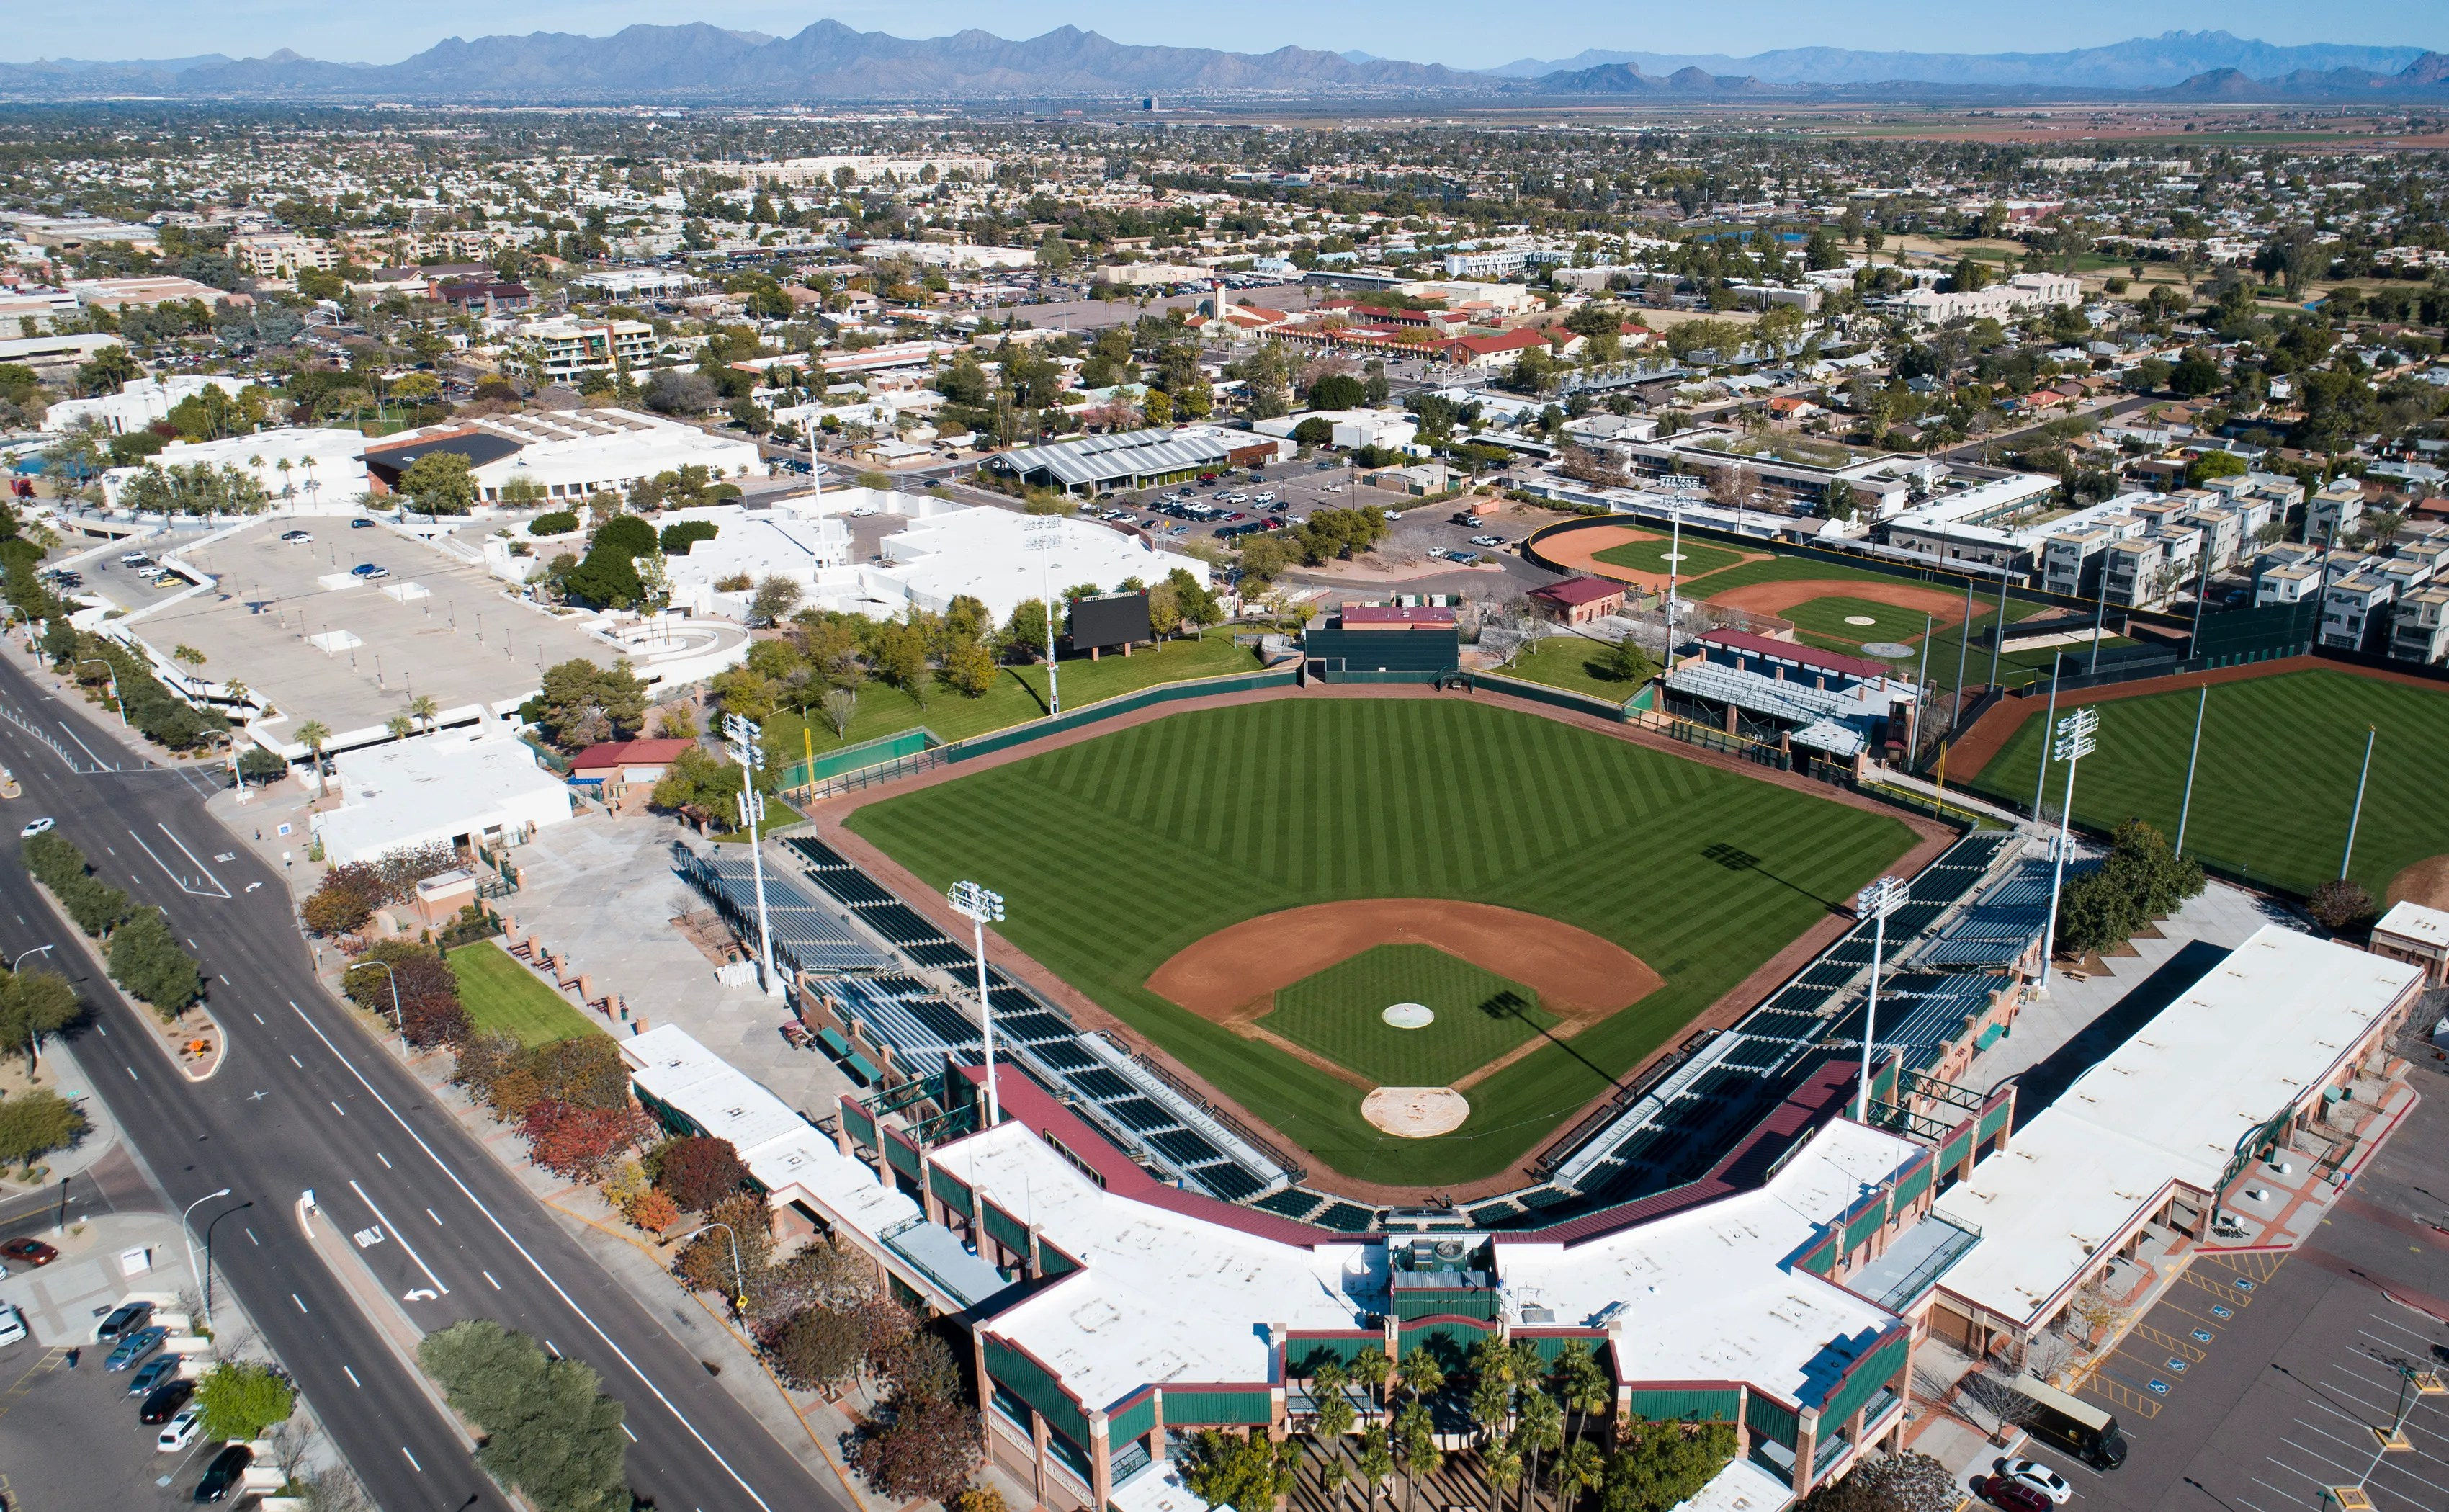 Arizona 2020 Spring Training: Drive to the Cactus League Stadium